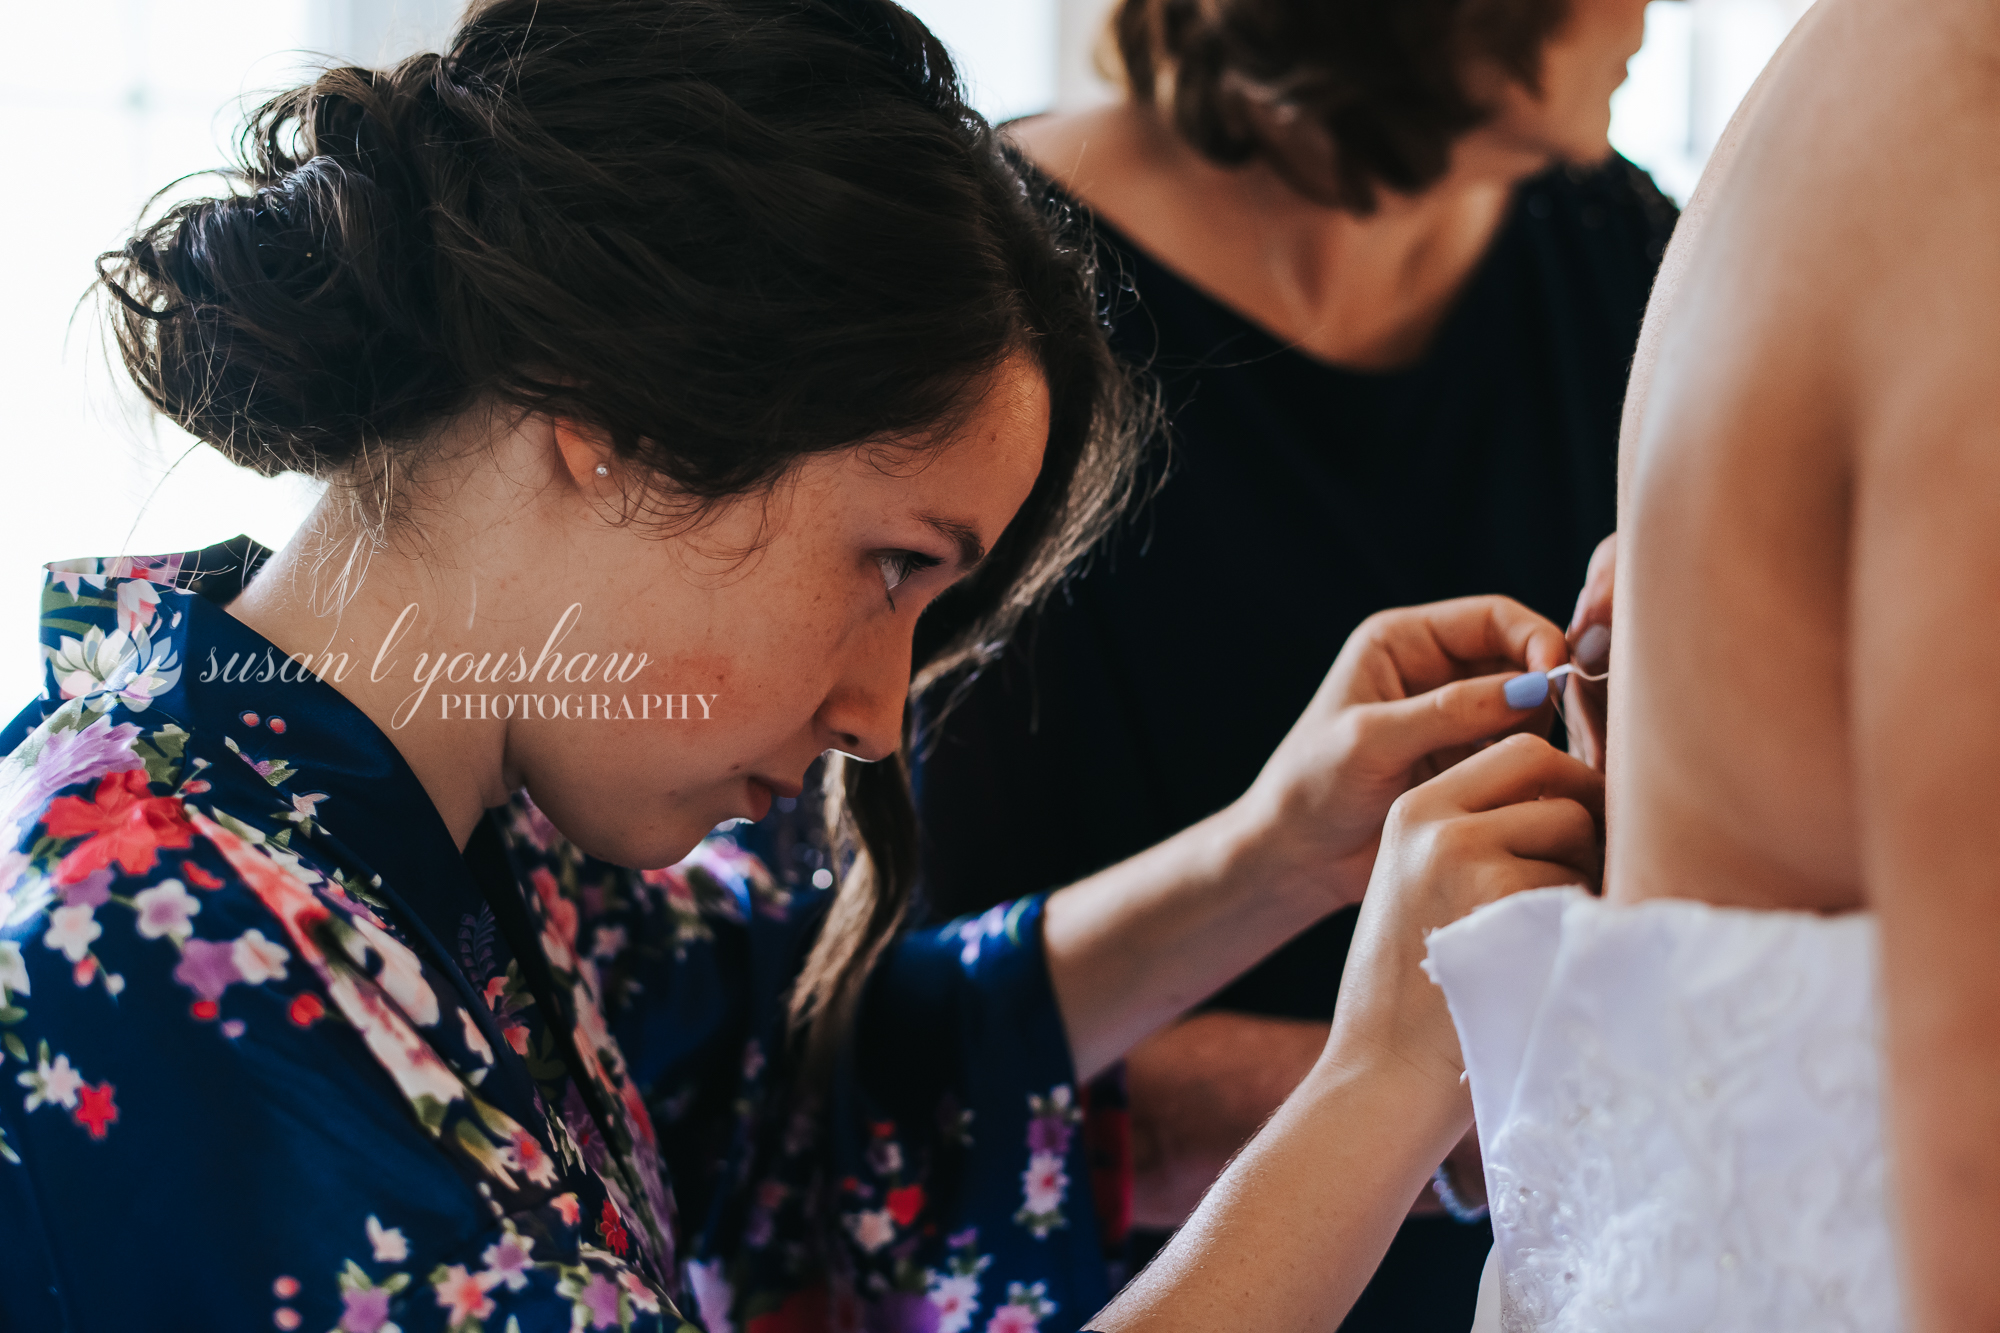 Erin and Jason Wedding Photos 07-06-2019 SLY Photography-26.jpg